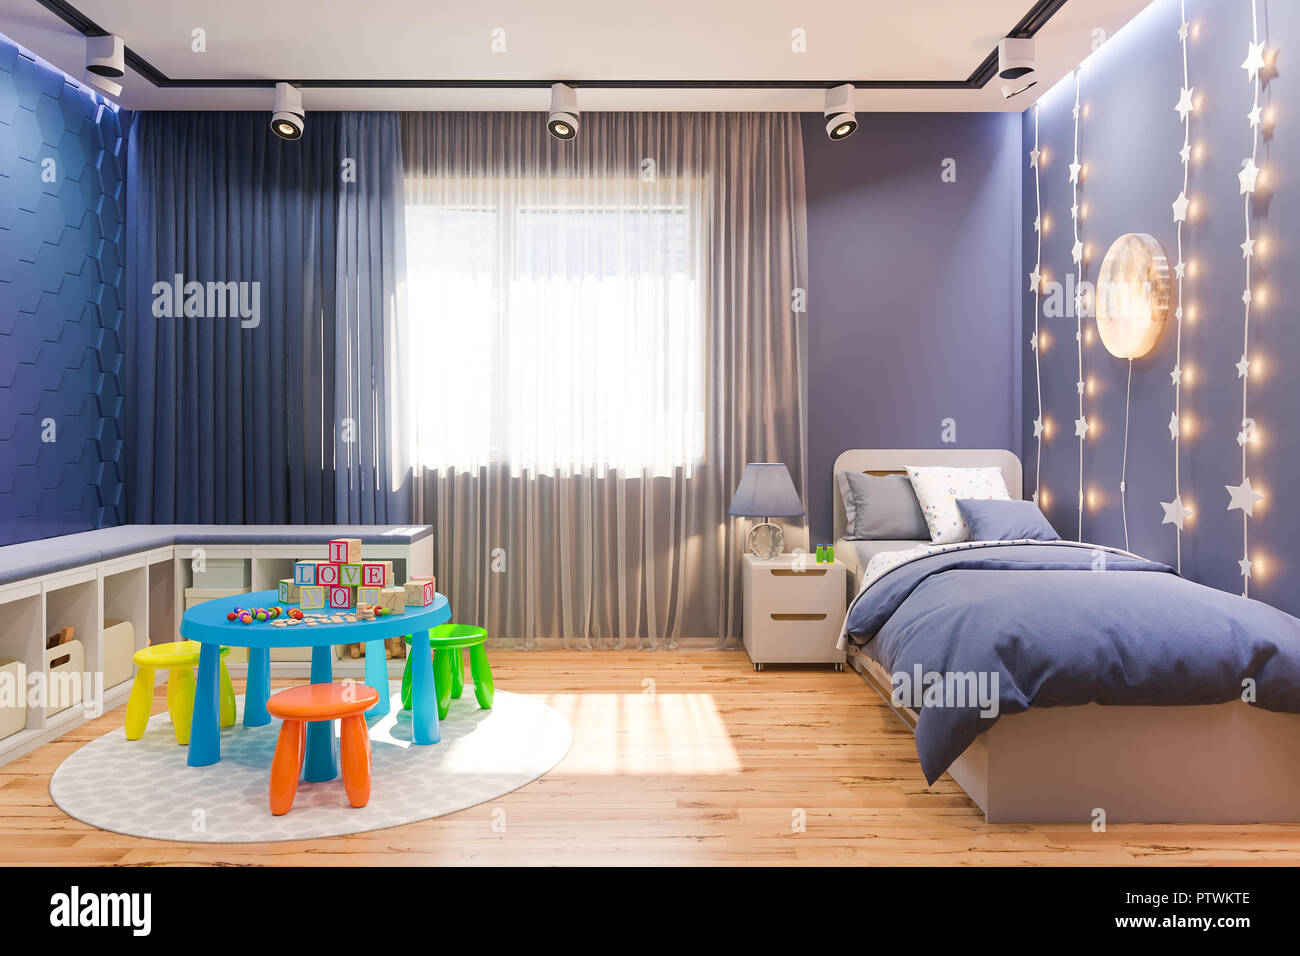 https www alamy com 3d illustration of the kids bedroom in deep blue color visualization of the concept of interior design child room for boy in a space theme image221840542 html